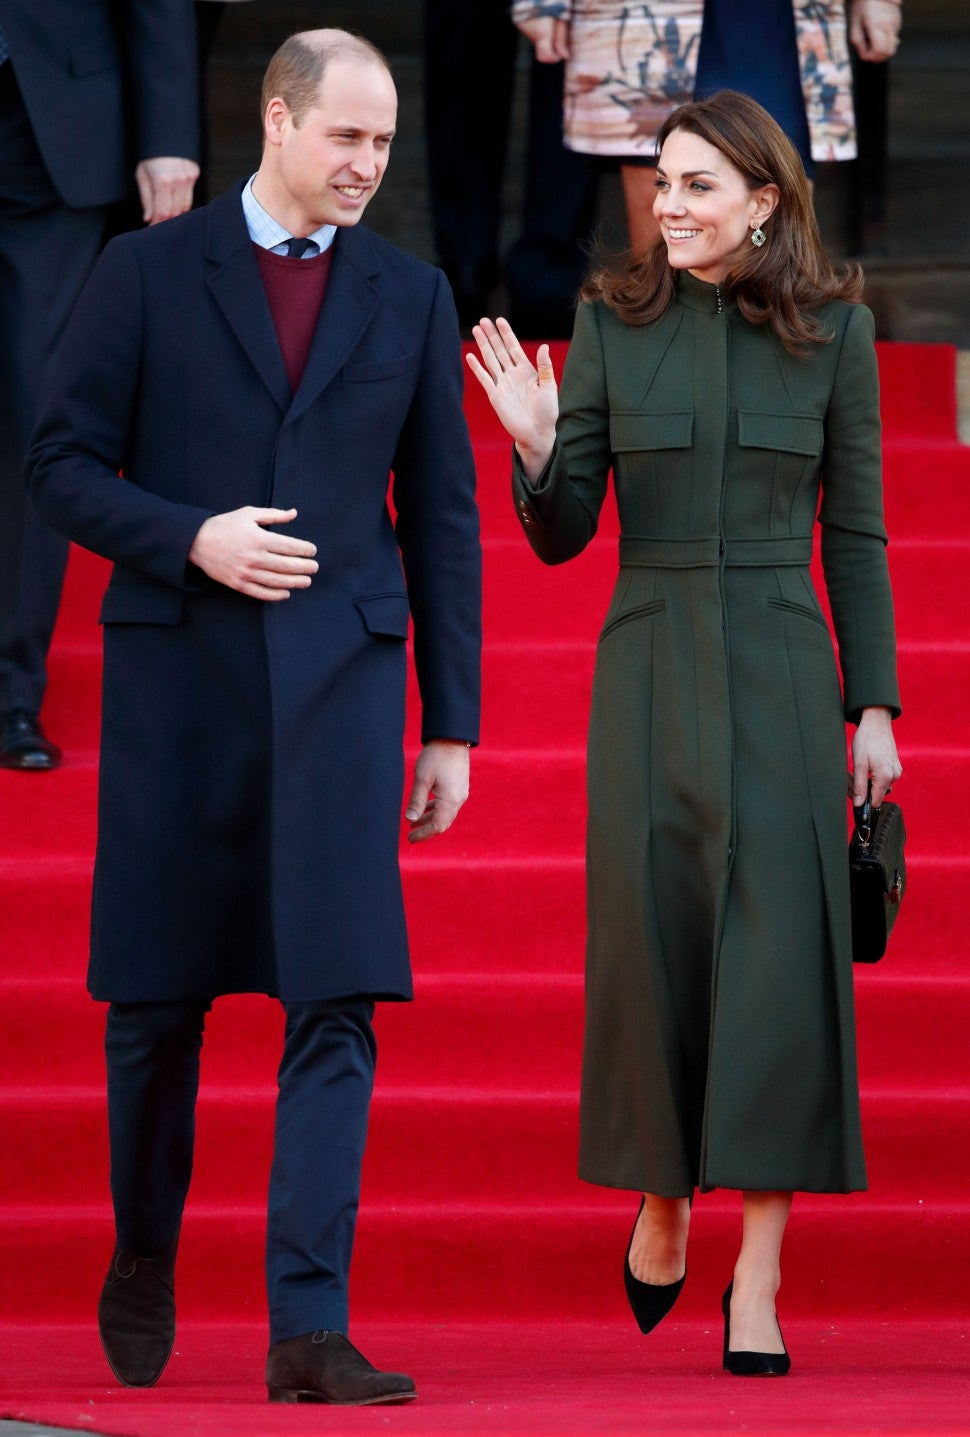 Prince William and Kate Middleton in bradford, england